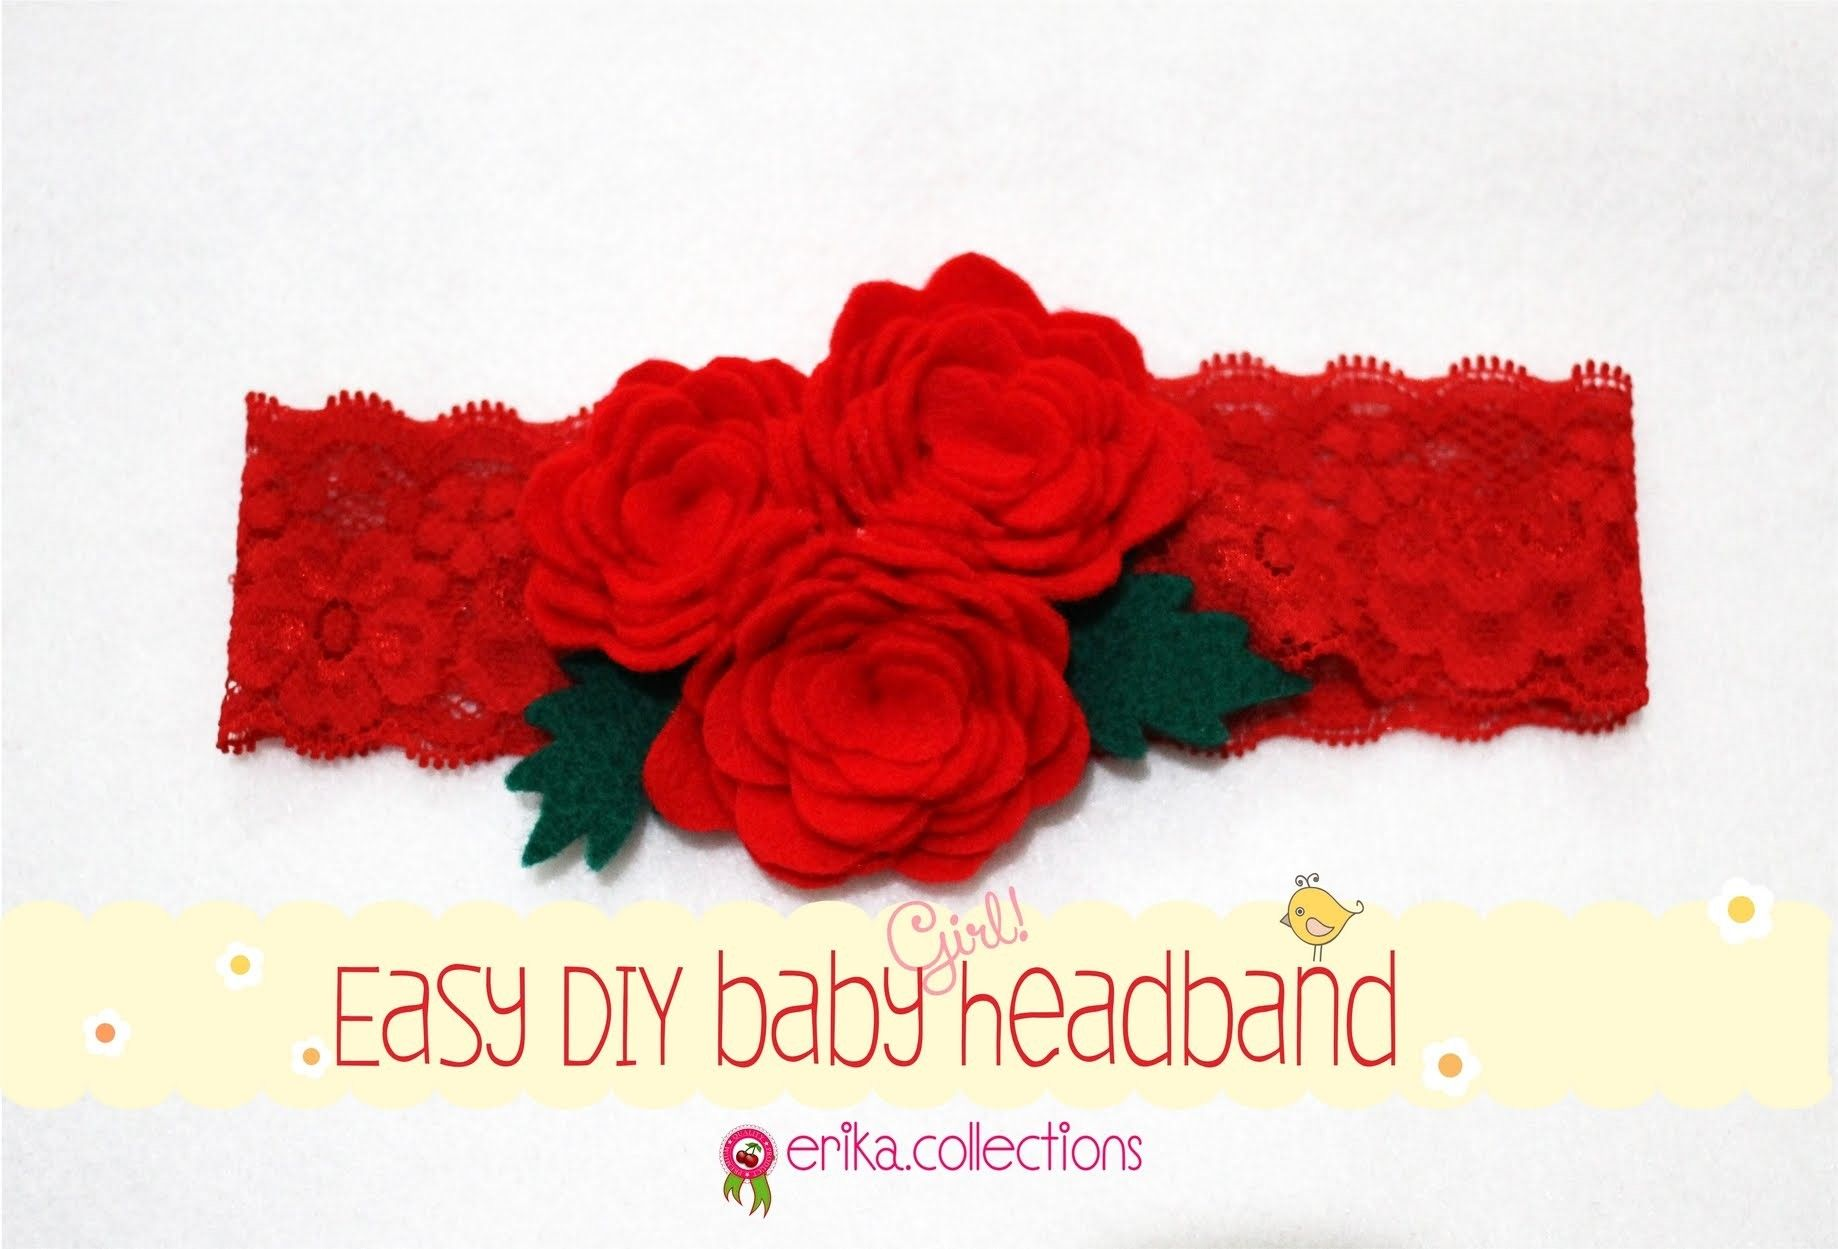 Easy DIY Baby Headband Tutorial [Redrose] - Erika Felt. Flanel Craft #babyheadbandtutorial